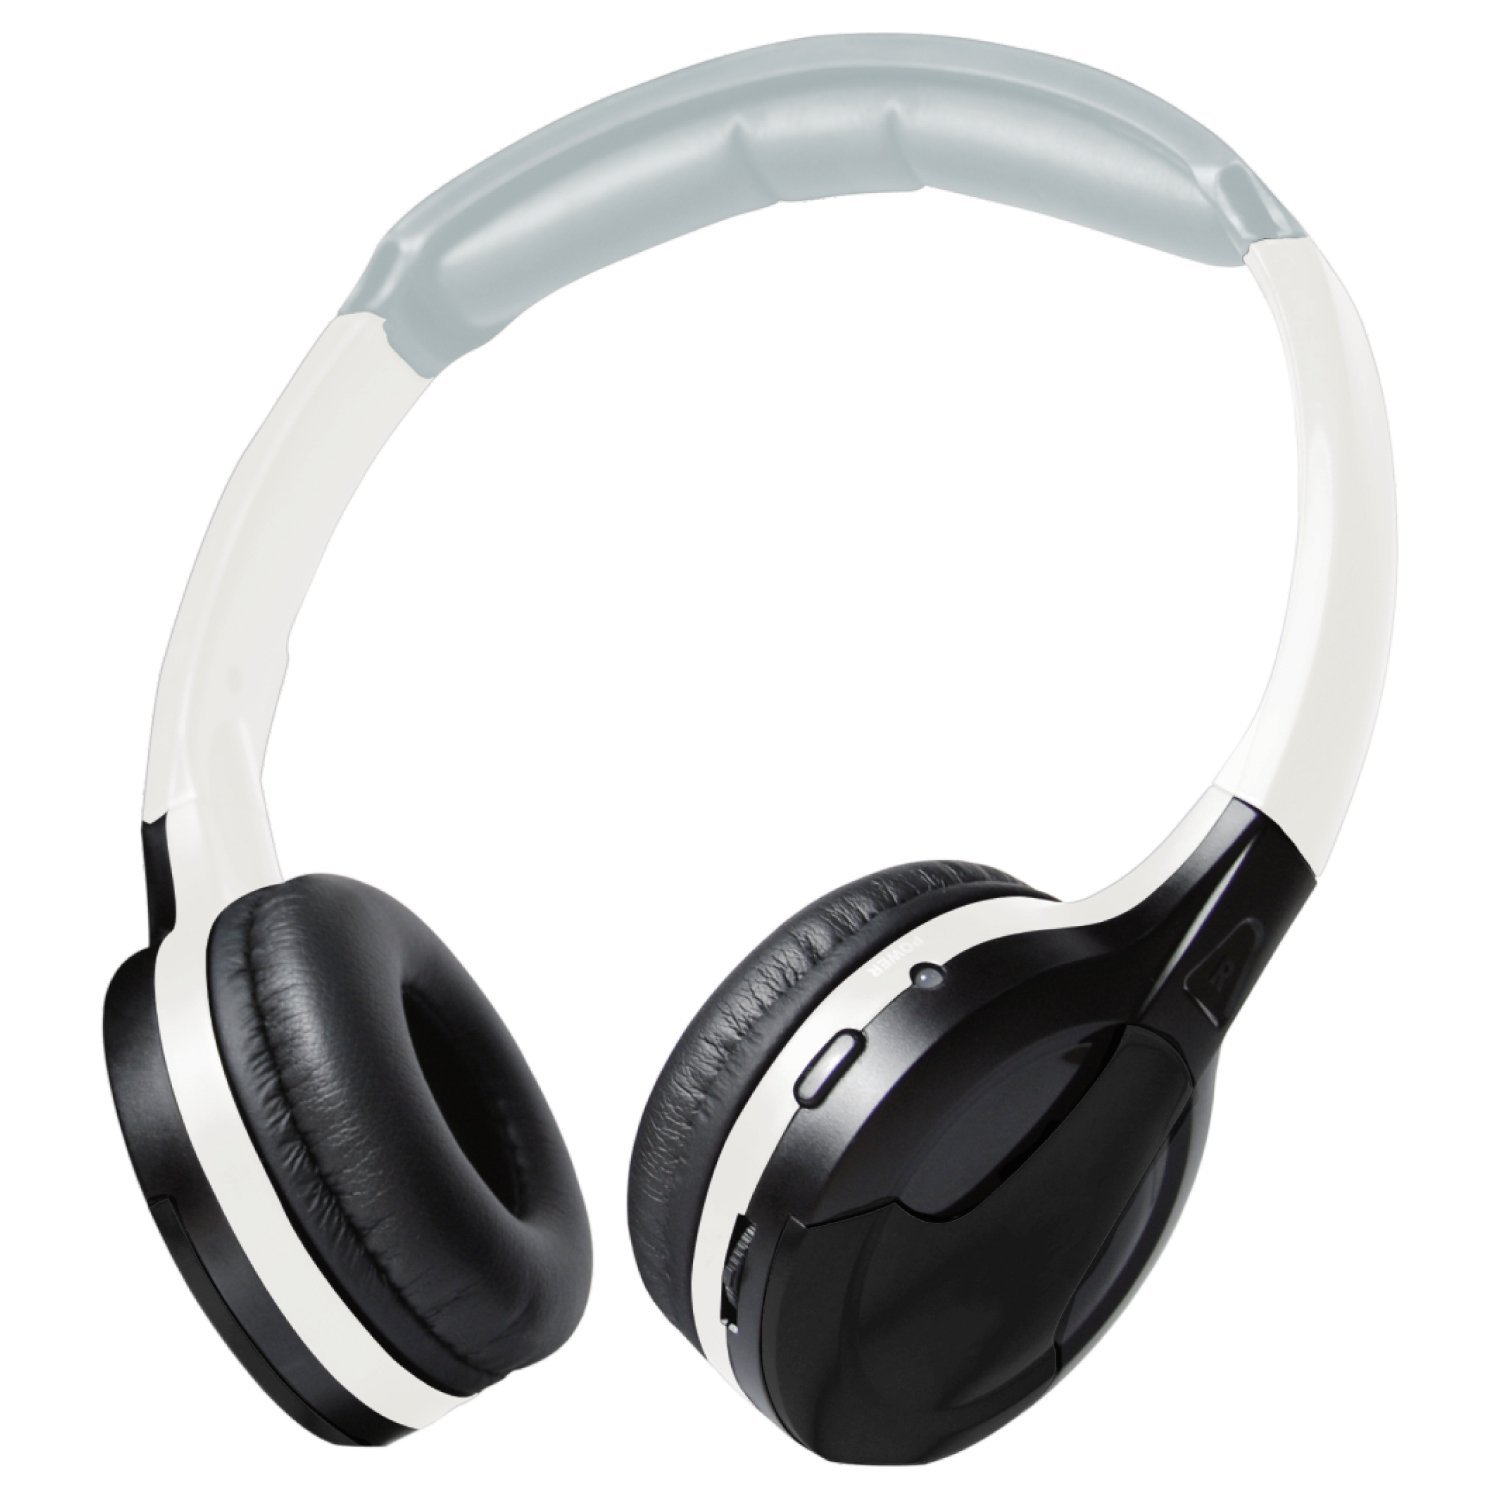 IR630BLMobile Headphones Black By XO Vision Ship from US